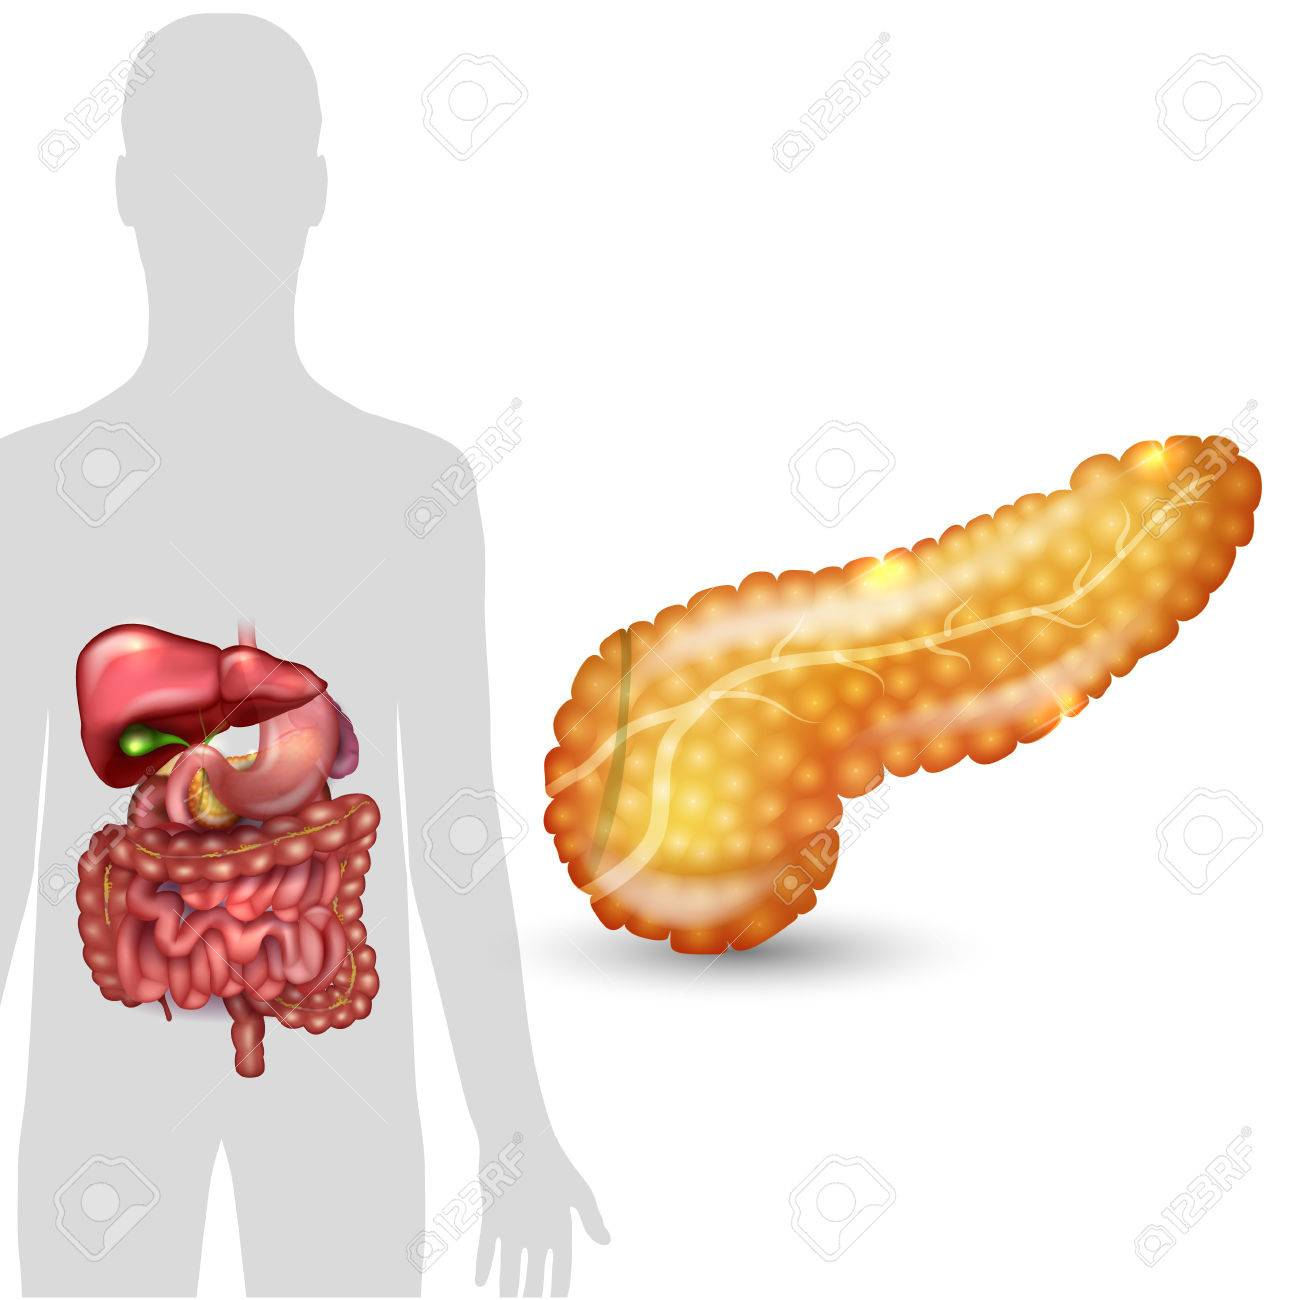 Pancreas Anatomy And Human Silhouette With Internal Organs ...